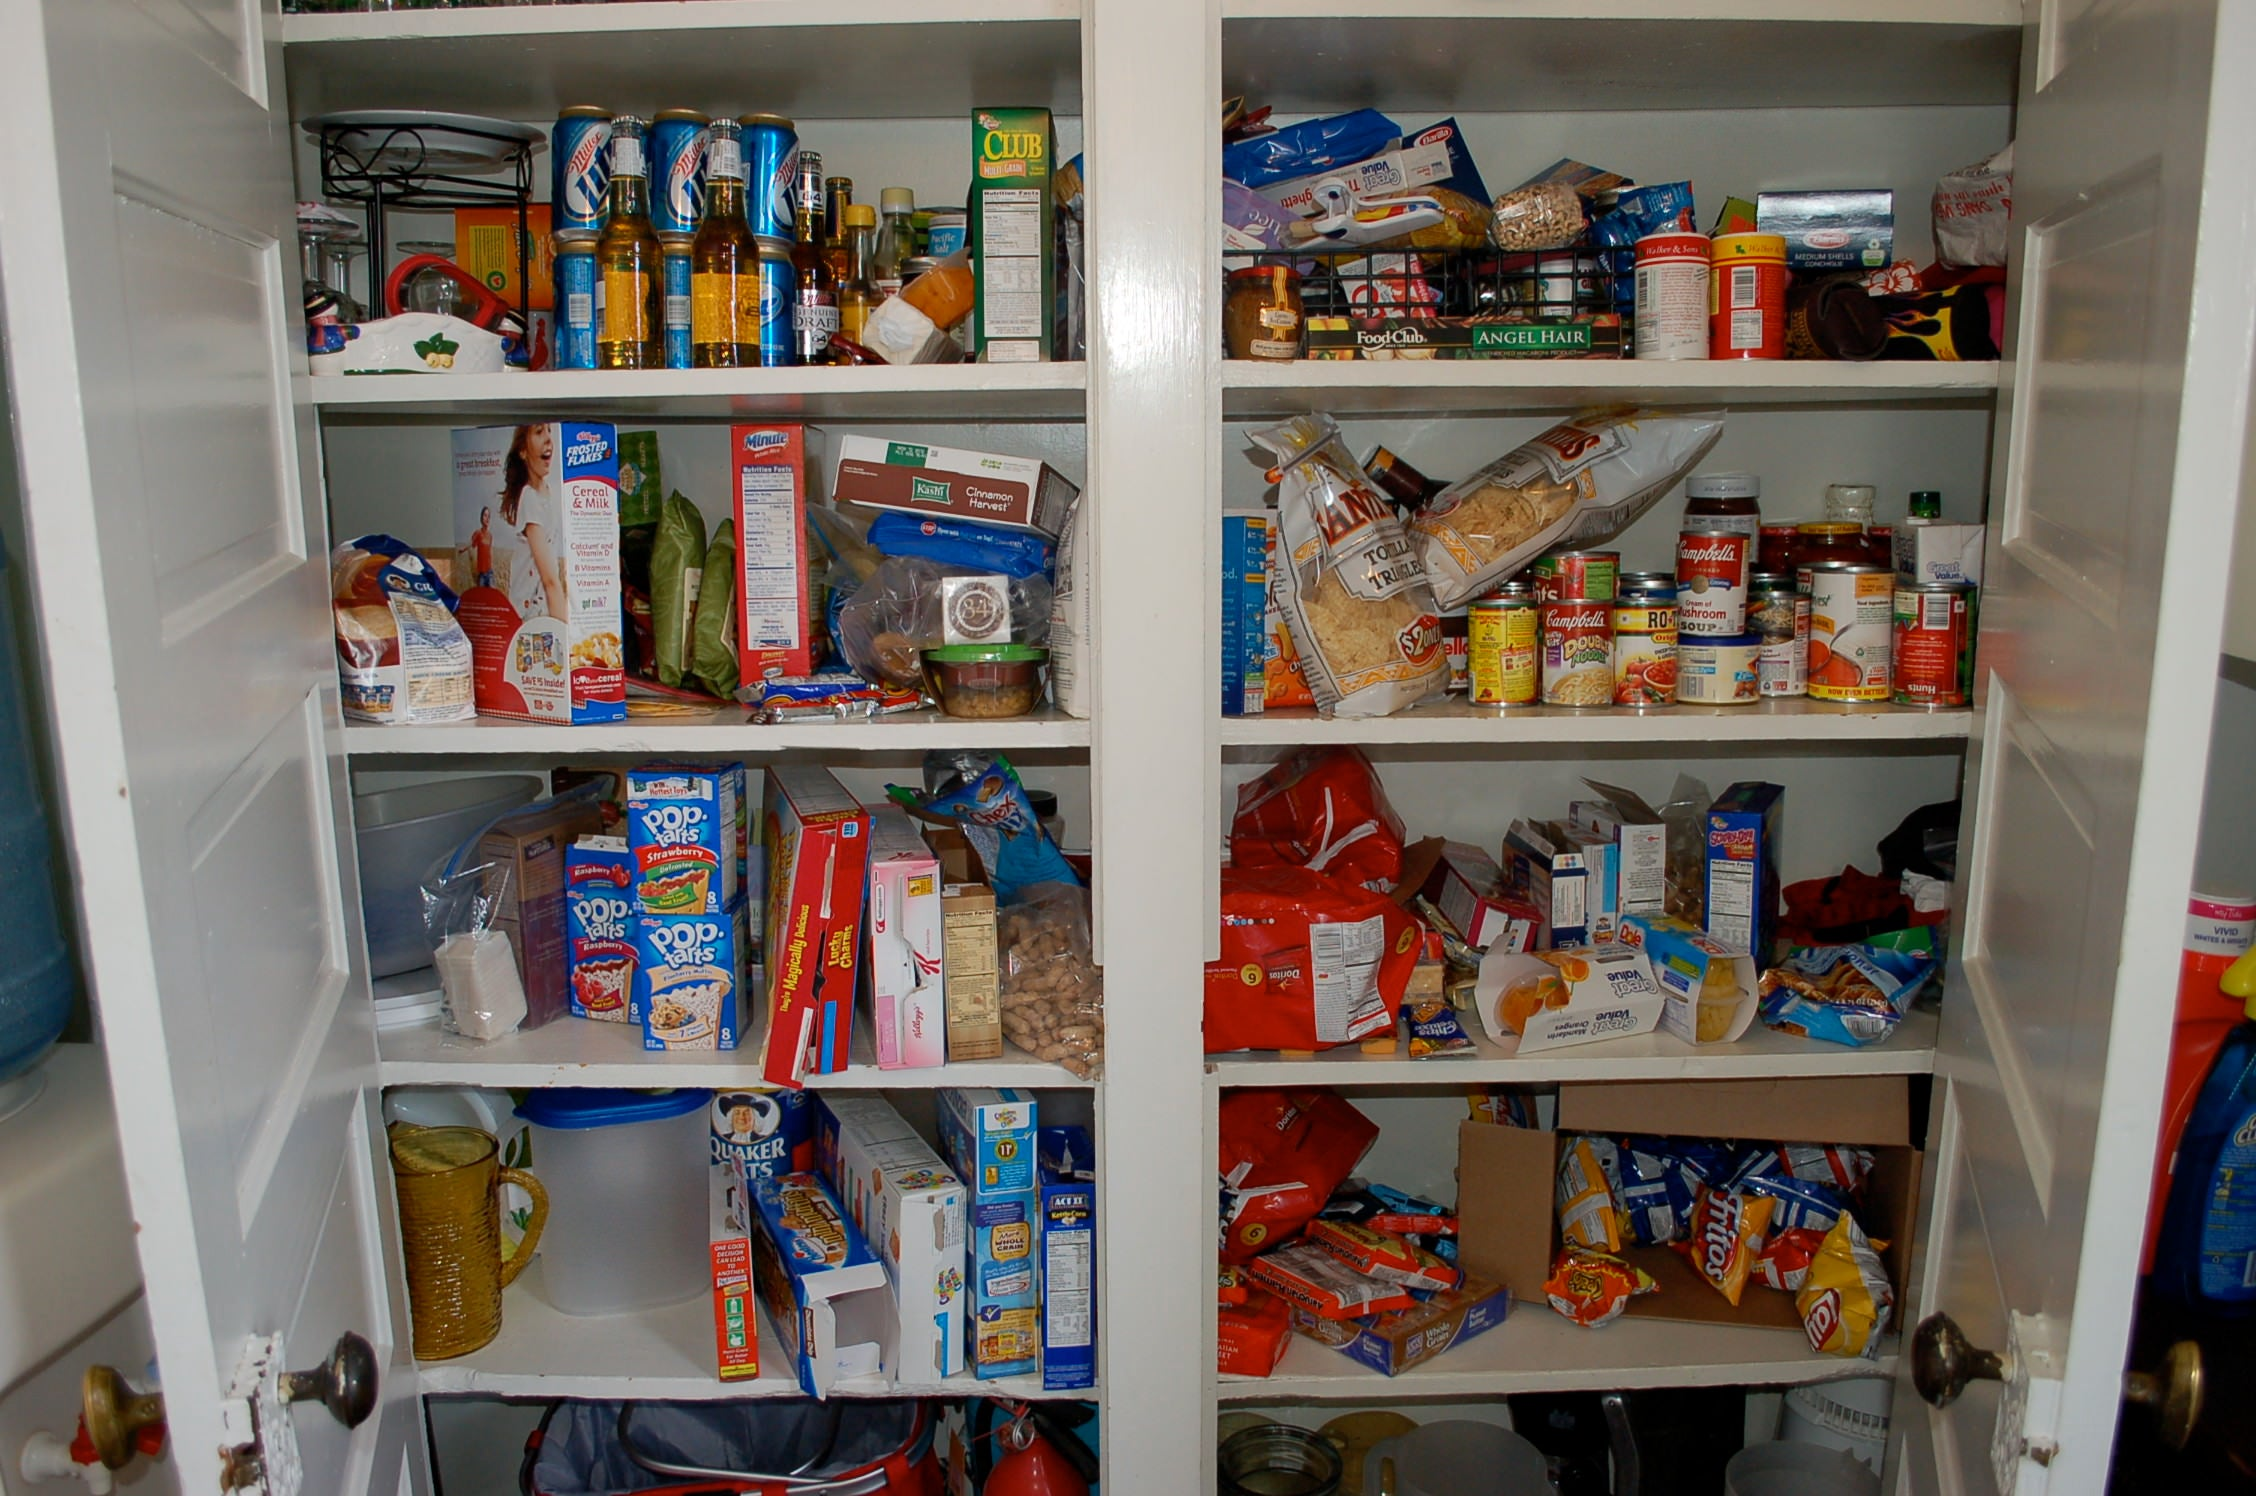 Kitchen pantry, messy pantry, kitchen food, lots of food